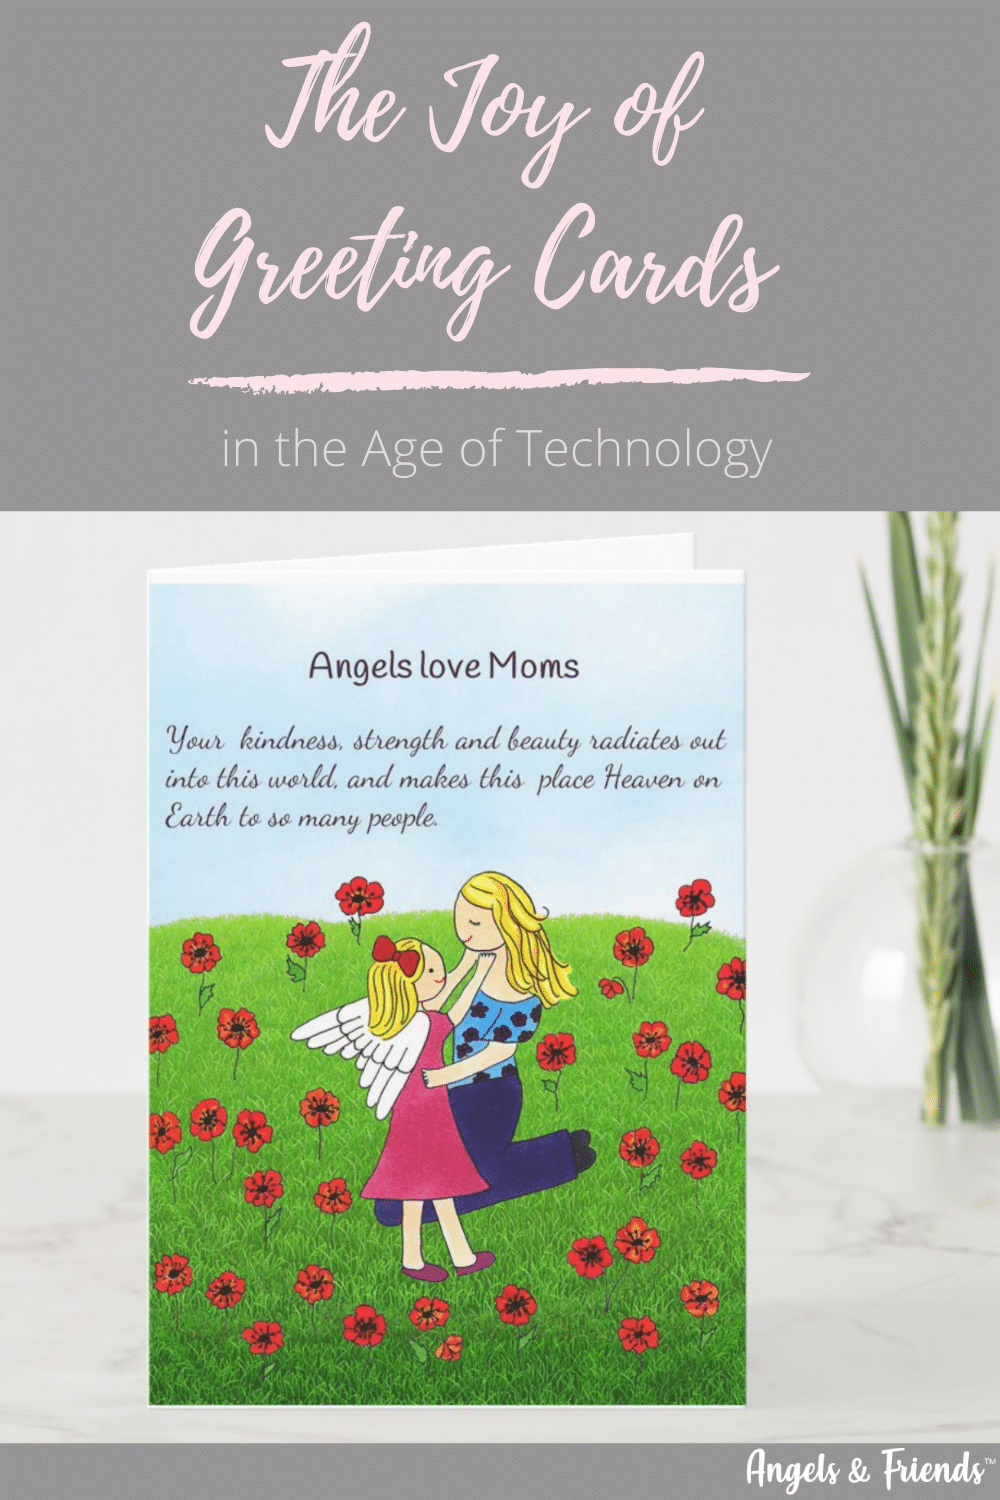 The Joy of Sending Greeting Cards in the Age of Technology